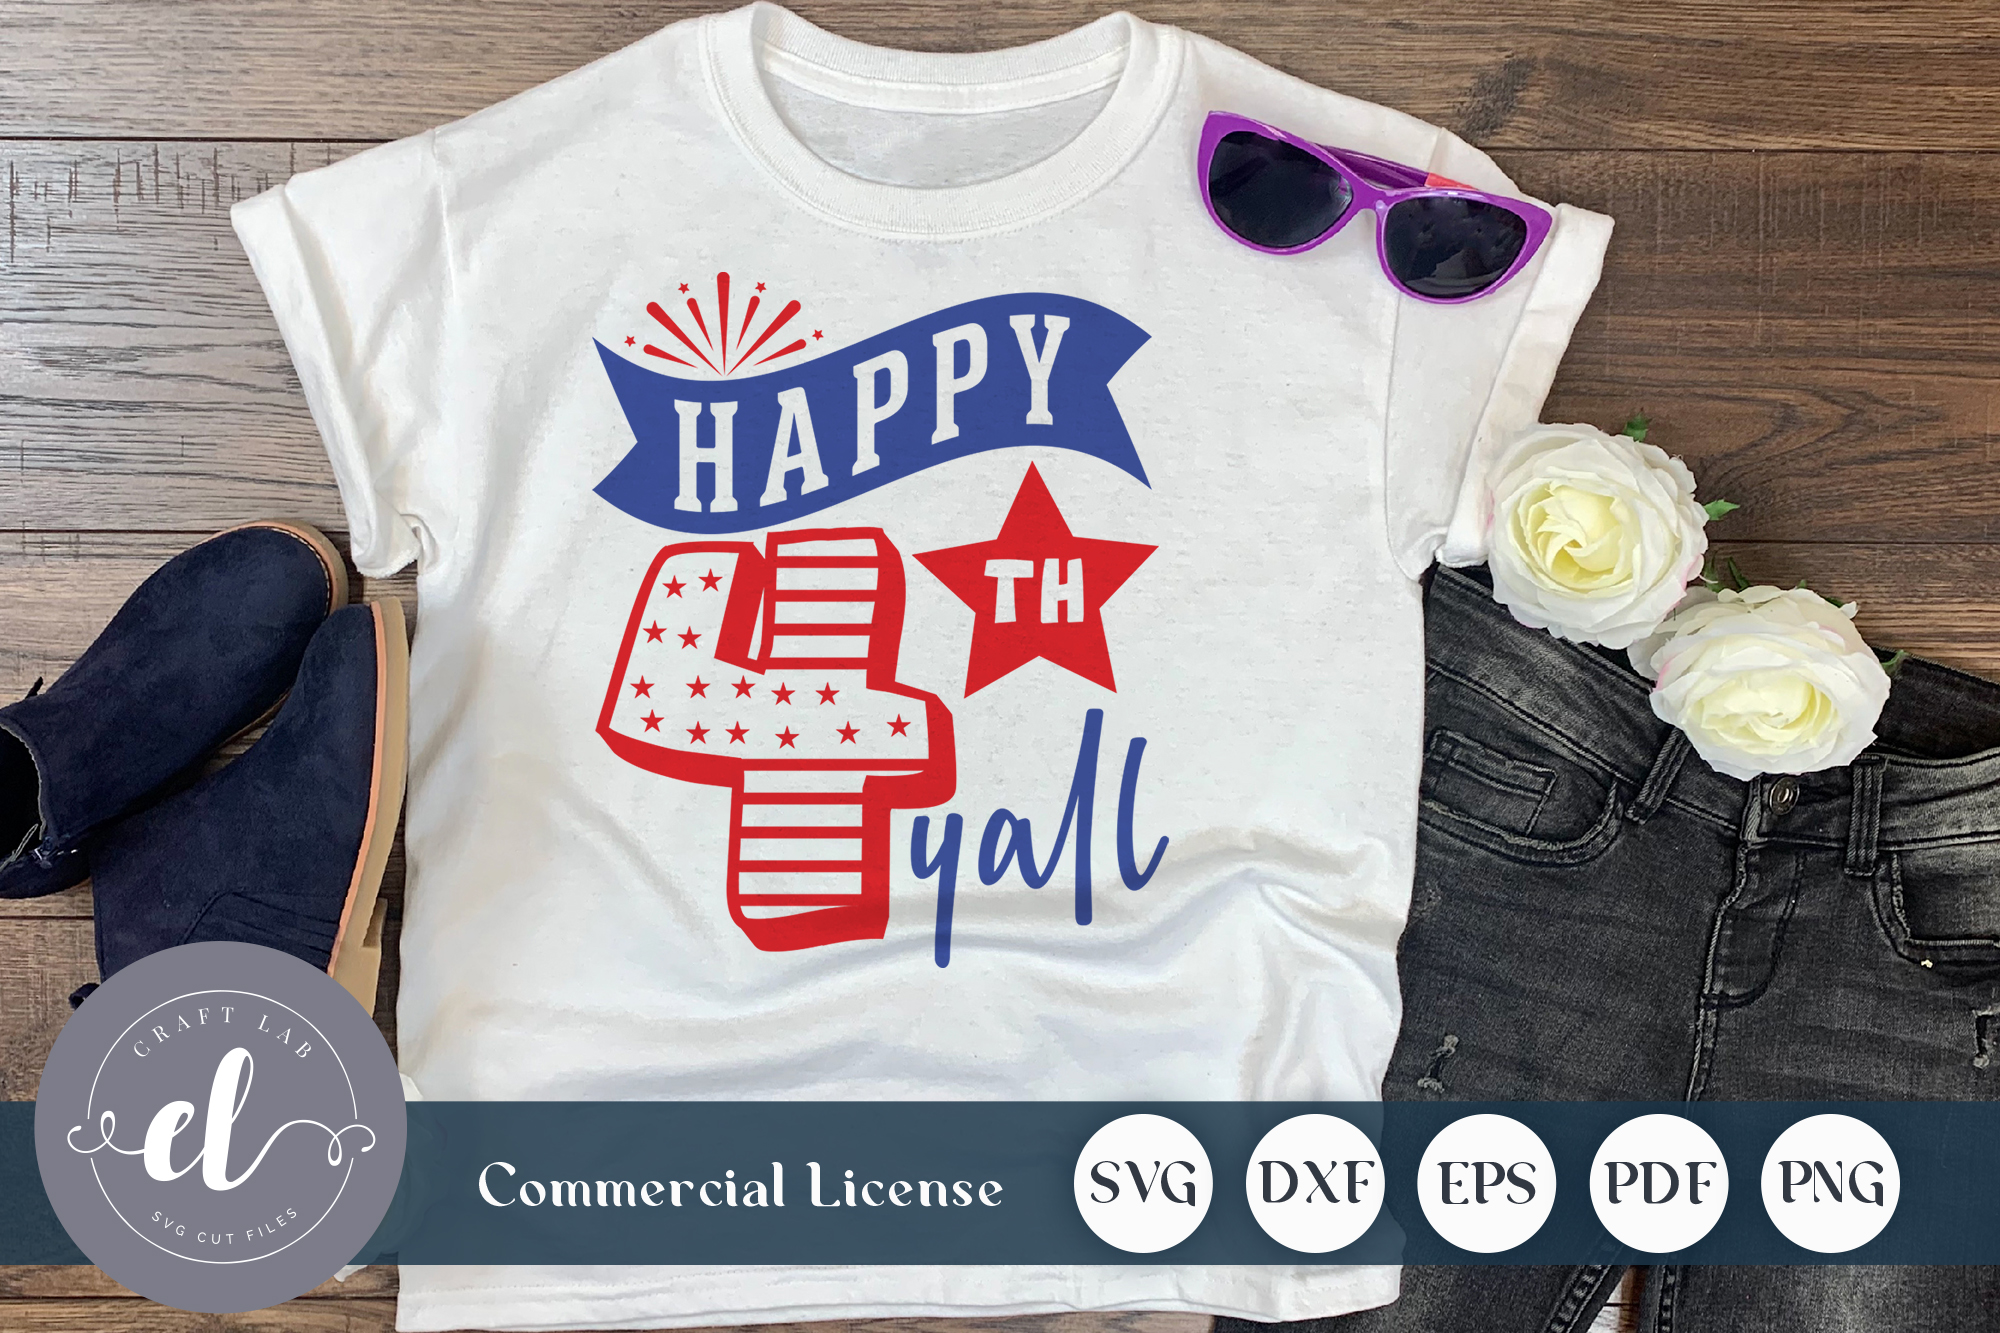 Download Free Happy 4th Of Y All Graphic By Craftlabsvg Creative Fabrica for Cricut Explore, Silhouette and other cutting machines.